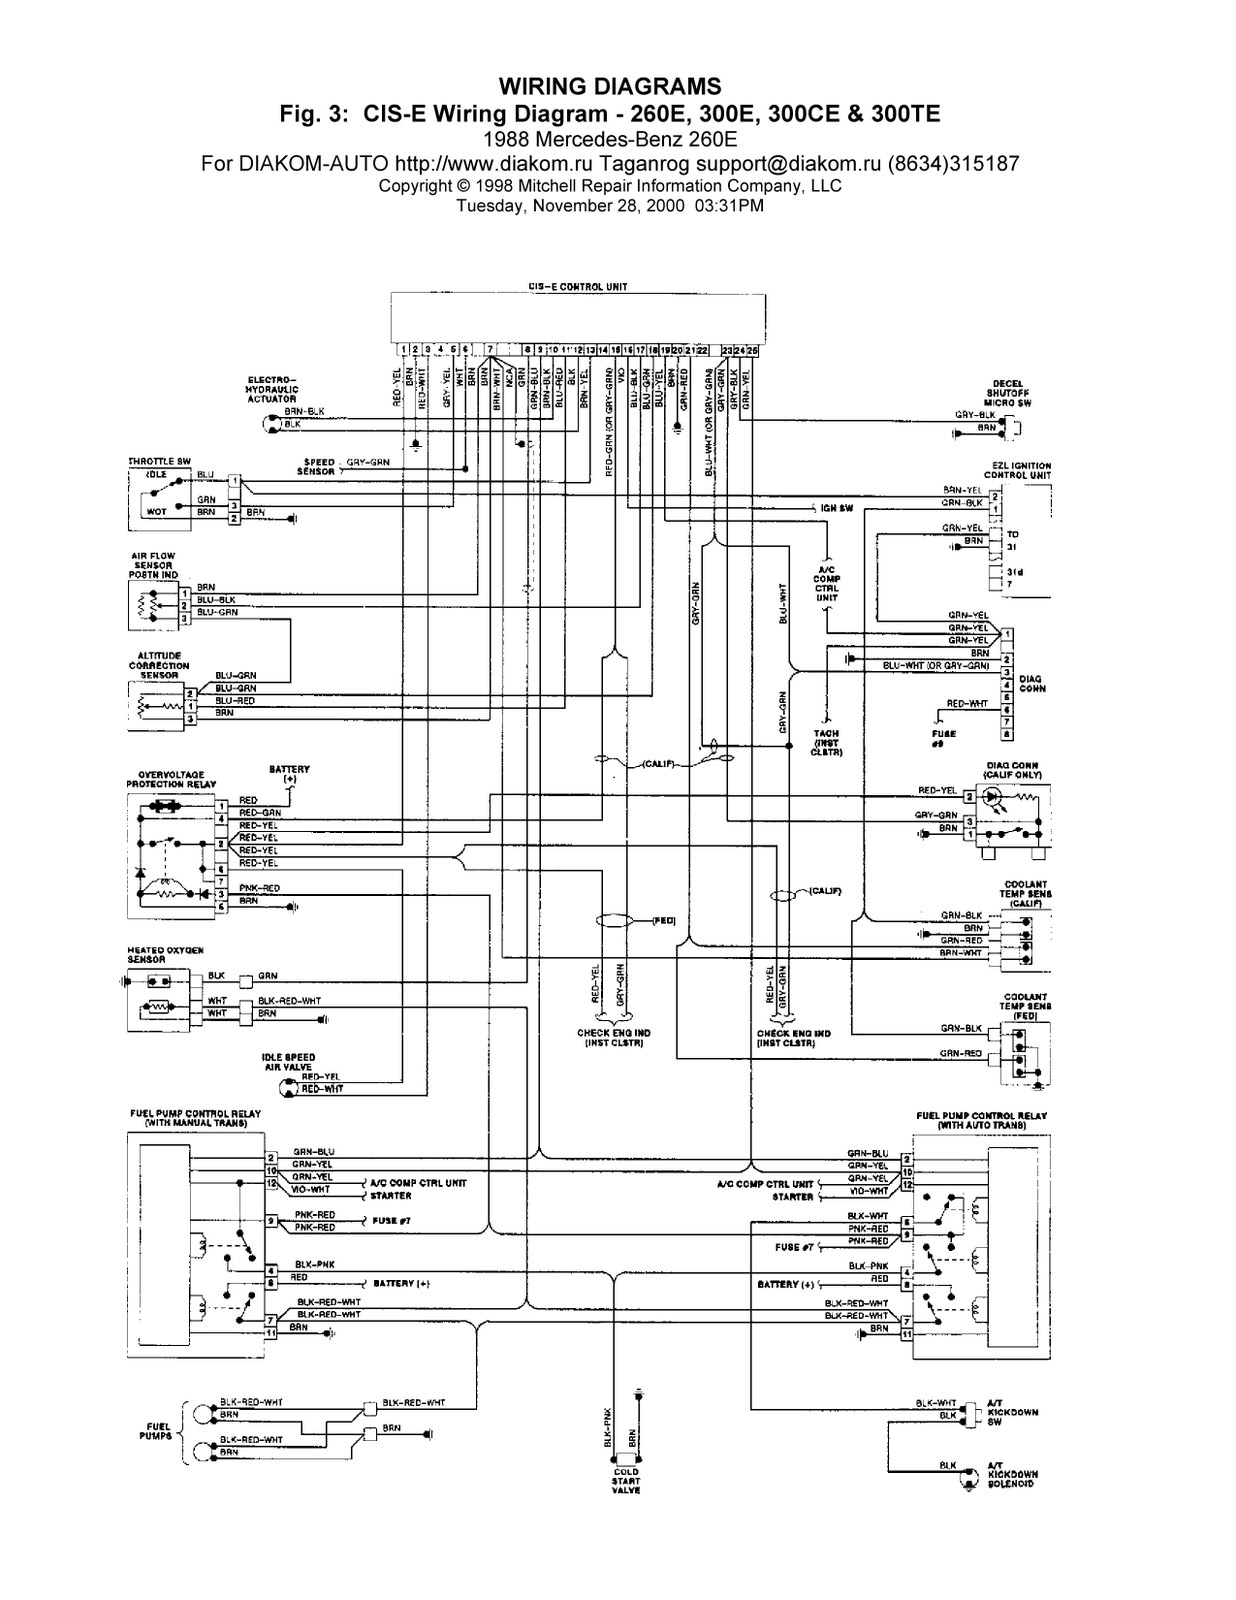 [TBQL_4184]  Mercedes Benz Electrical Wiring Diagram. electrical center for 1986 mercedes  benz 190e 61399. mercedes benz slk 230 wiring diagram wiring diagram. mb  190d 1984 no electrical power good batt 12 9 dcv | 1999 Mercedes Benz Wiring Diagrams |  | A.2002-acura-tl-radio.info. All Rights Reserved.